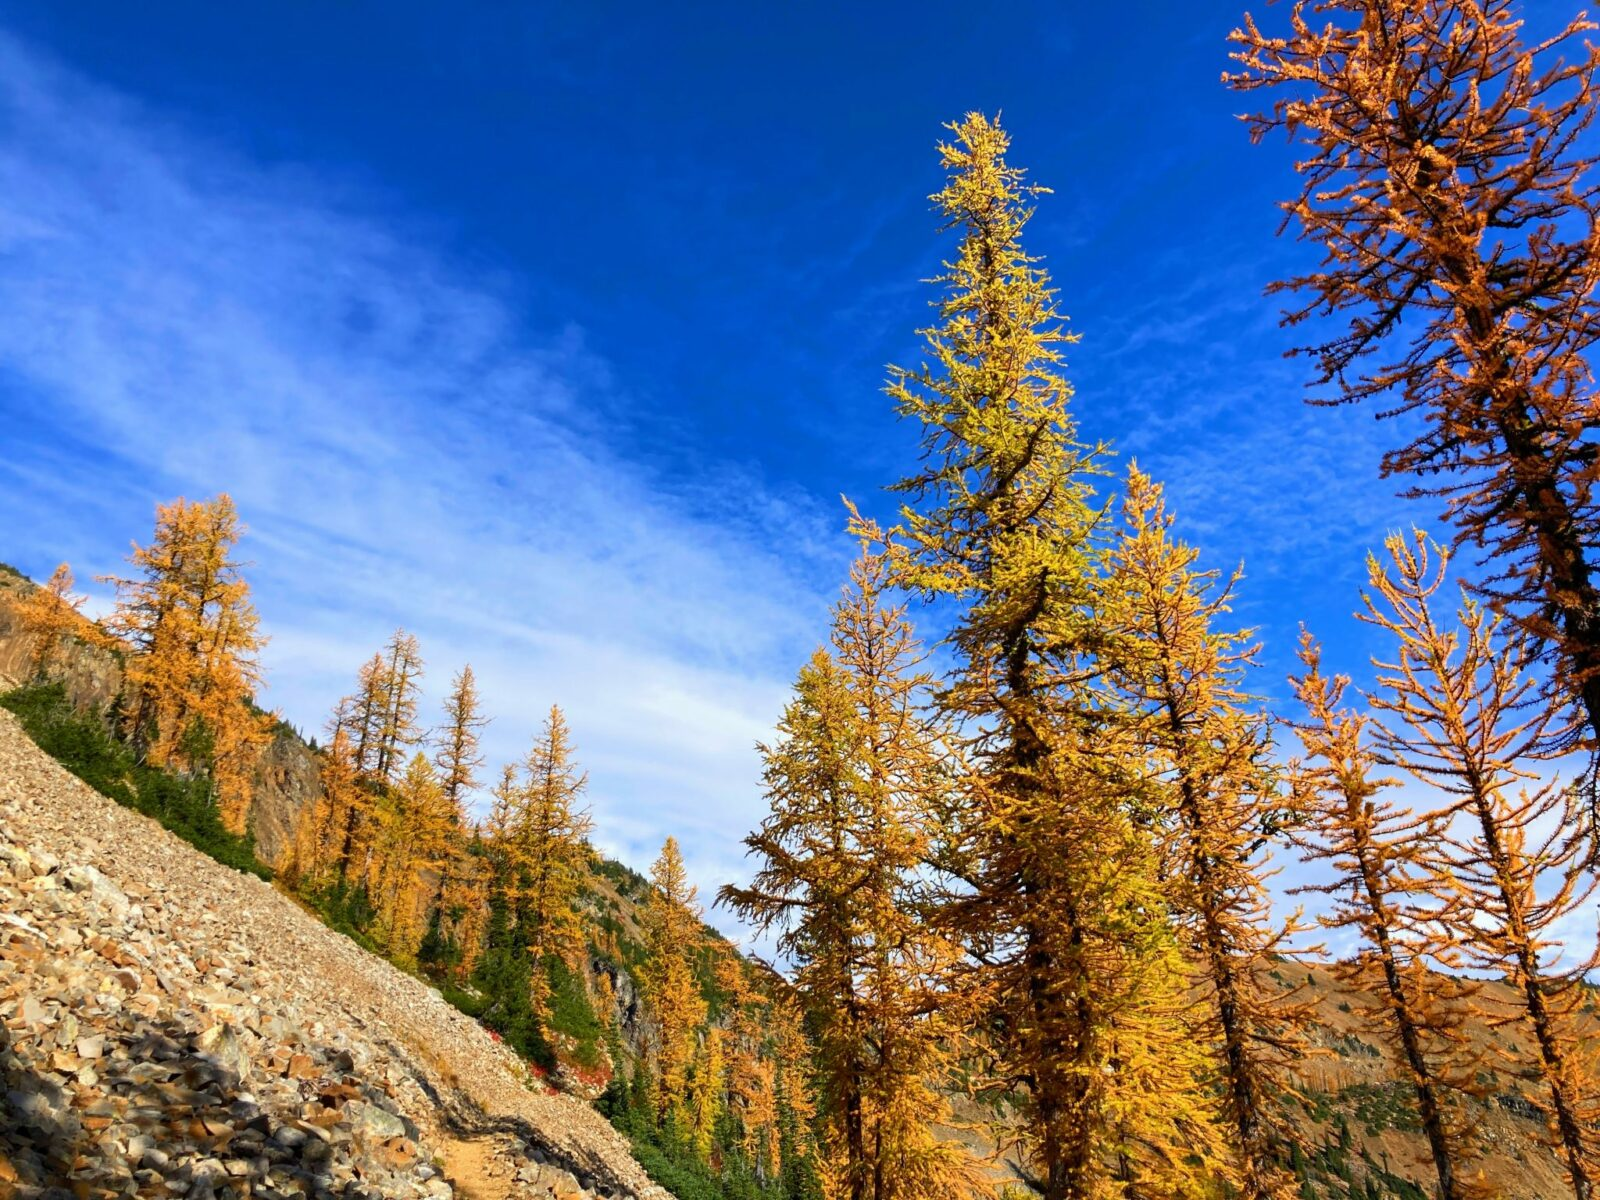 Golden larch trees and a few evergreens against the backdrop of a mountainside and a perfectly blue sky with a few white clouds.